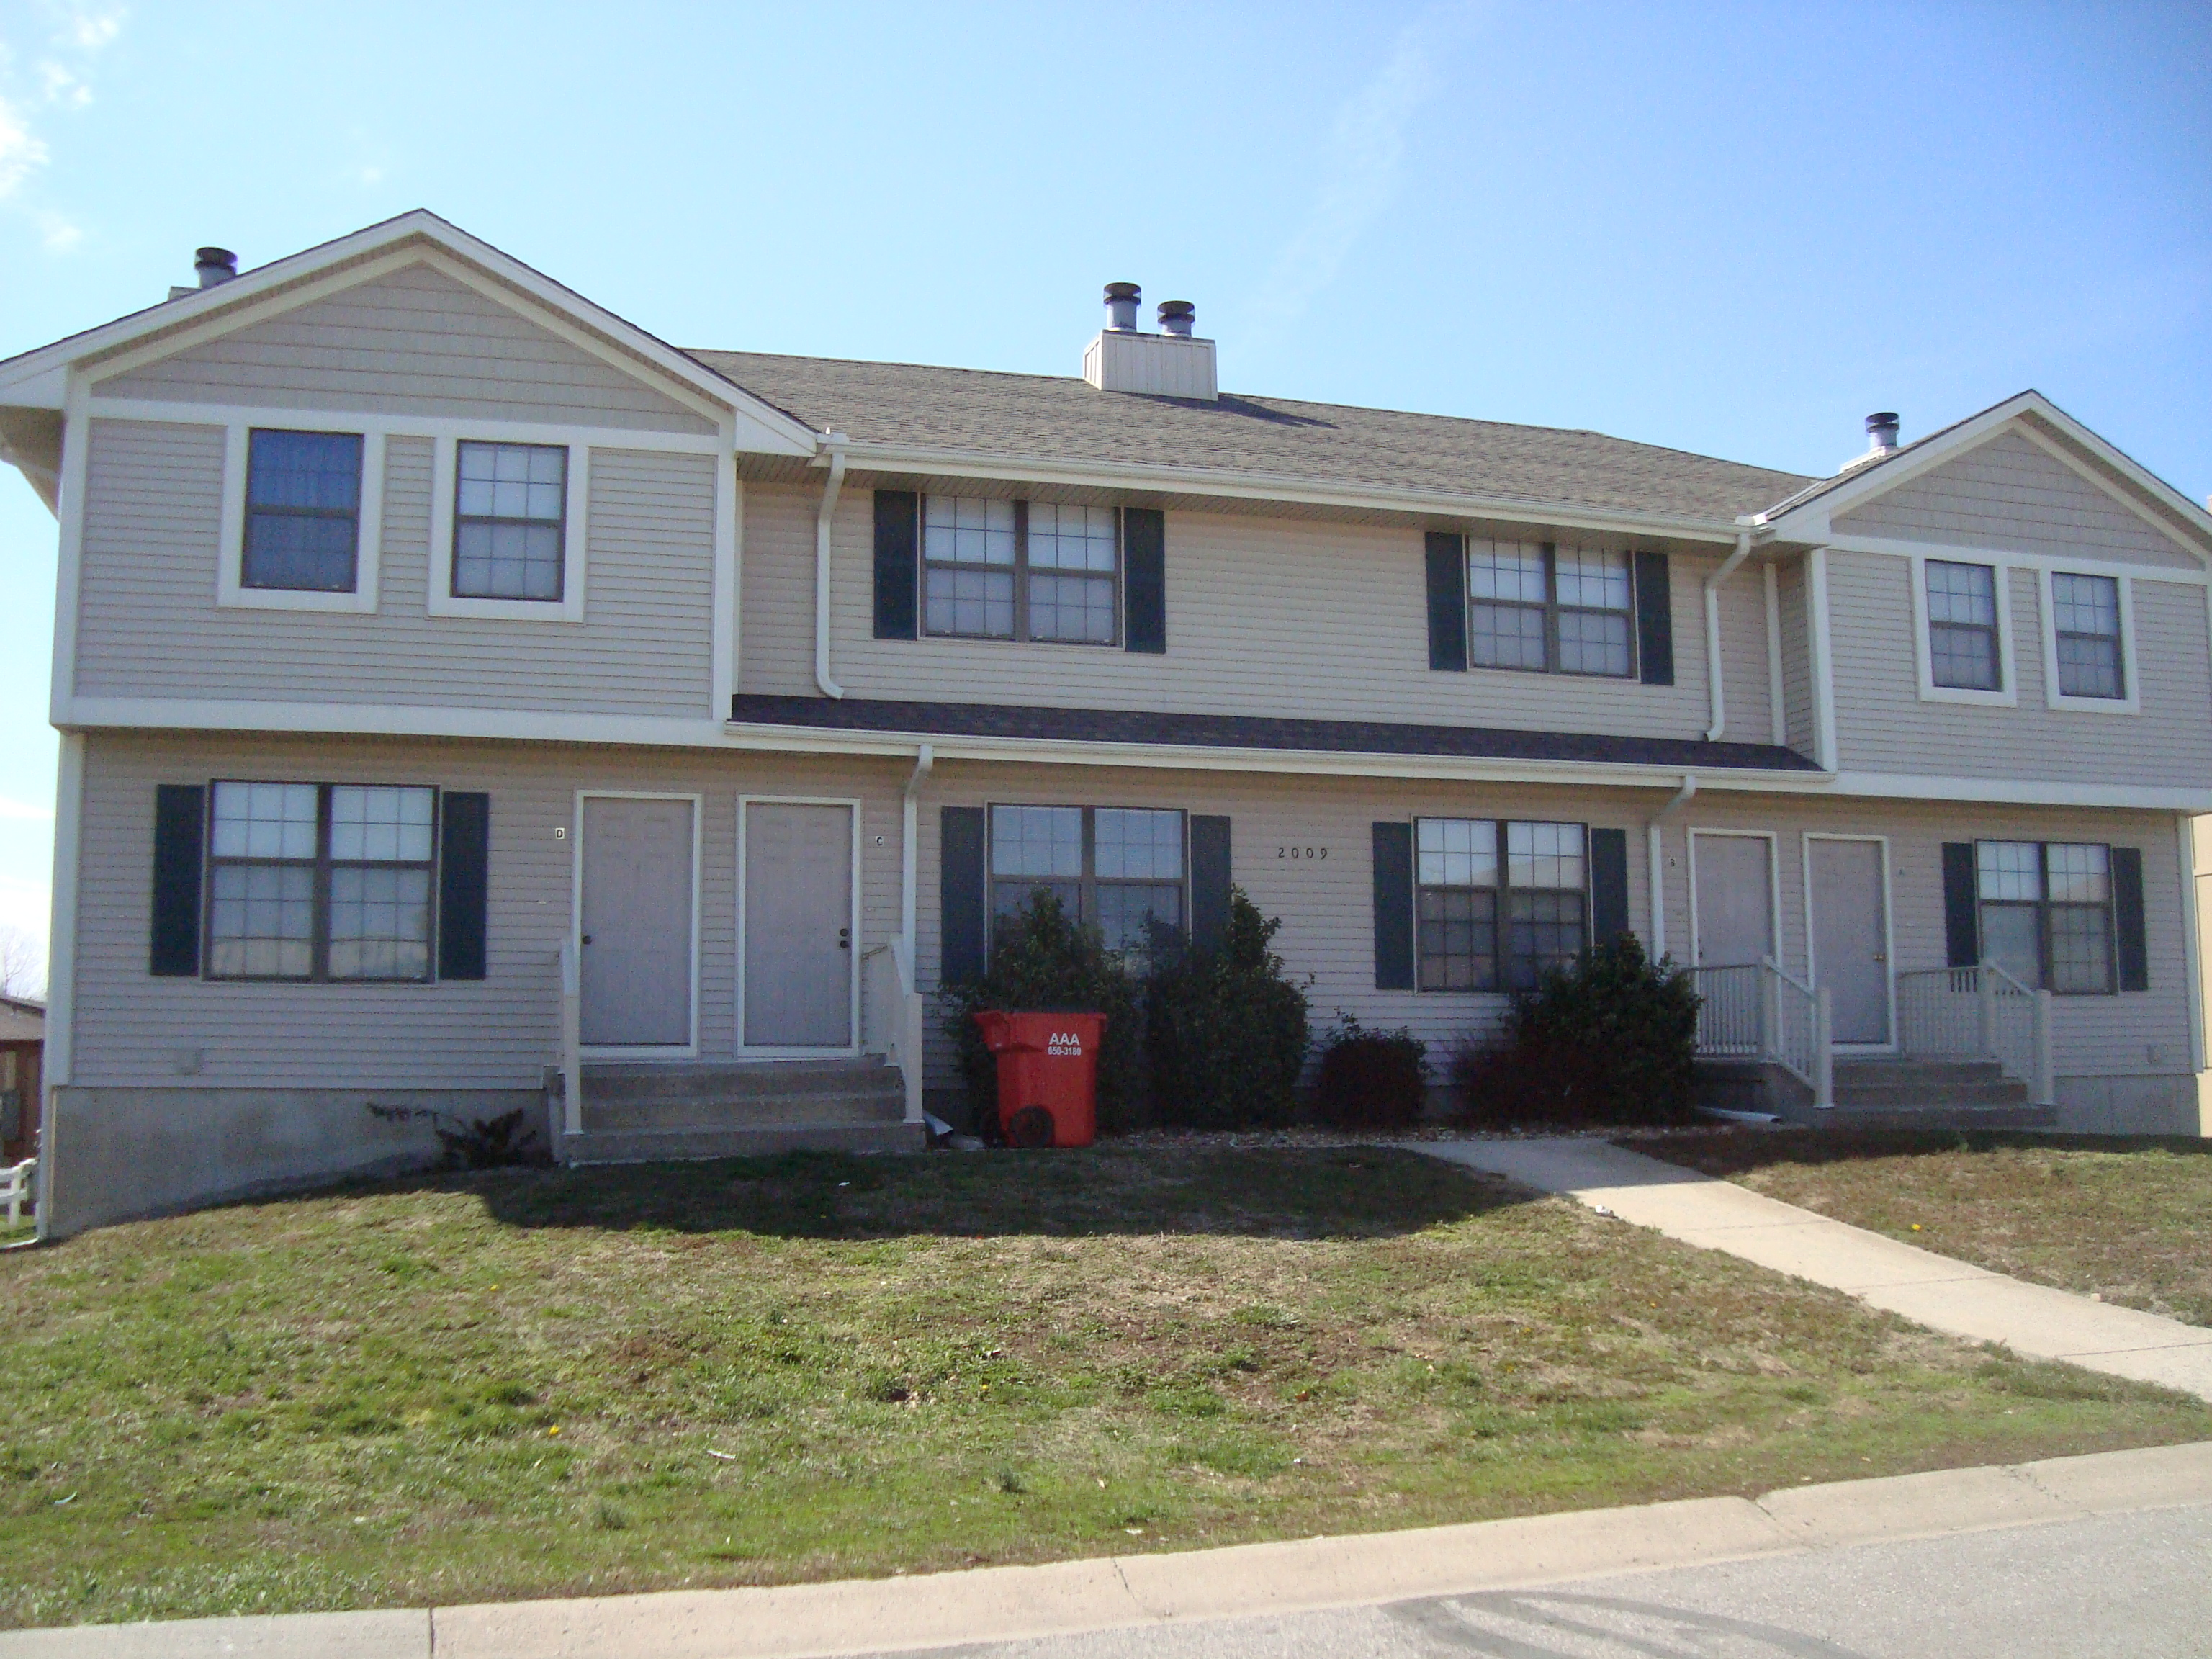 2009 8th 04 01 13Blue Springs 2 bedroom Townhouse. 2 Bedroom Townhouse. Home Design Ideas